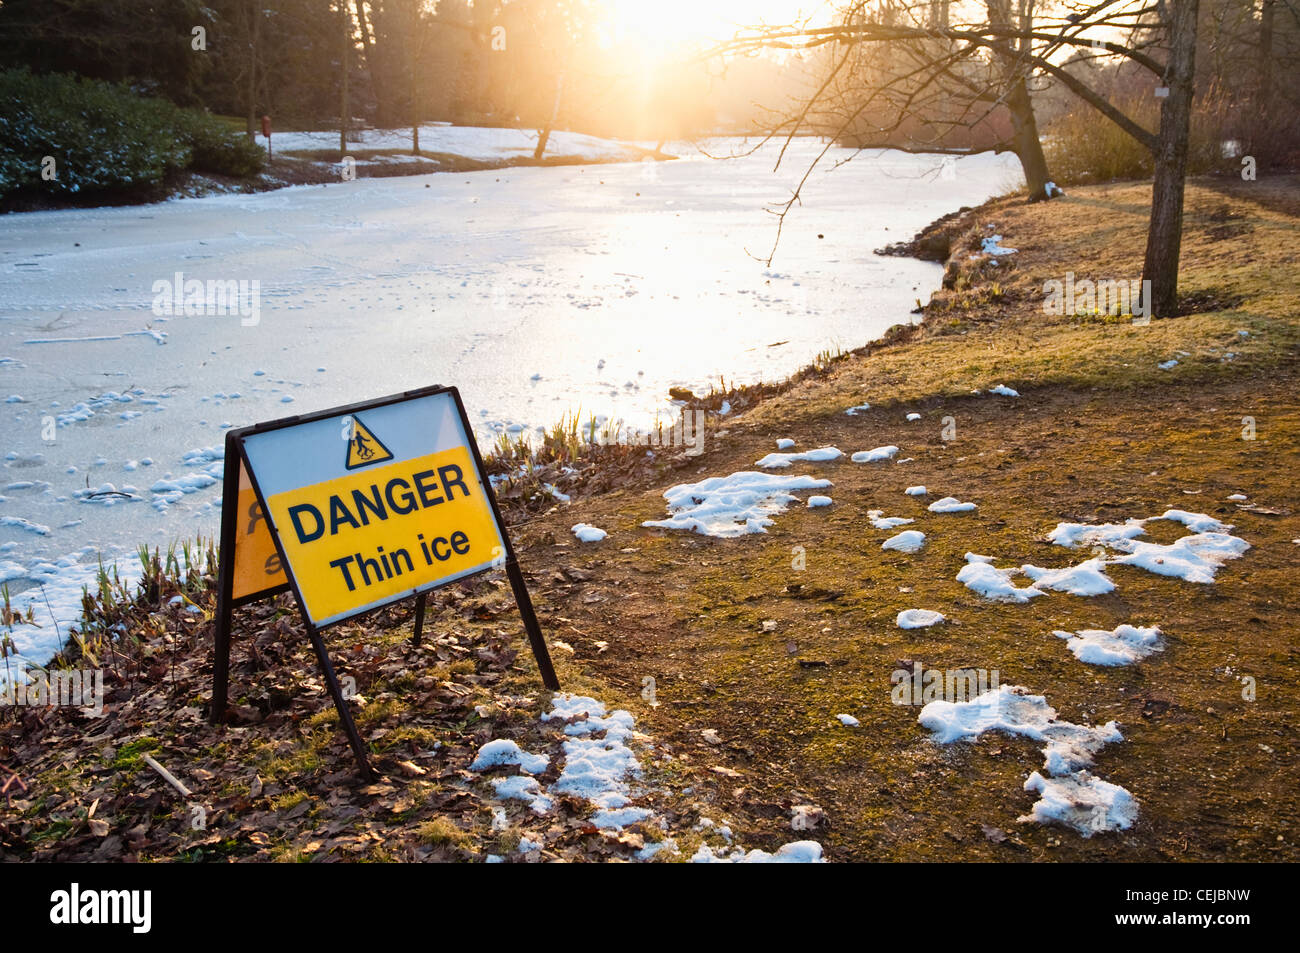 'Danger Thin Ice' sign beside a frozen lake lit up with winter sunshine. UK - Stock Image